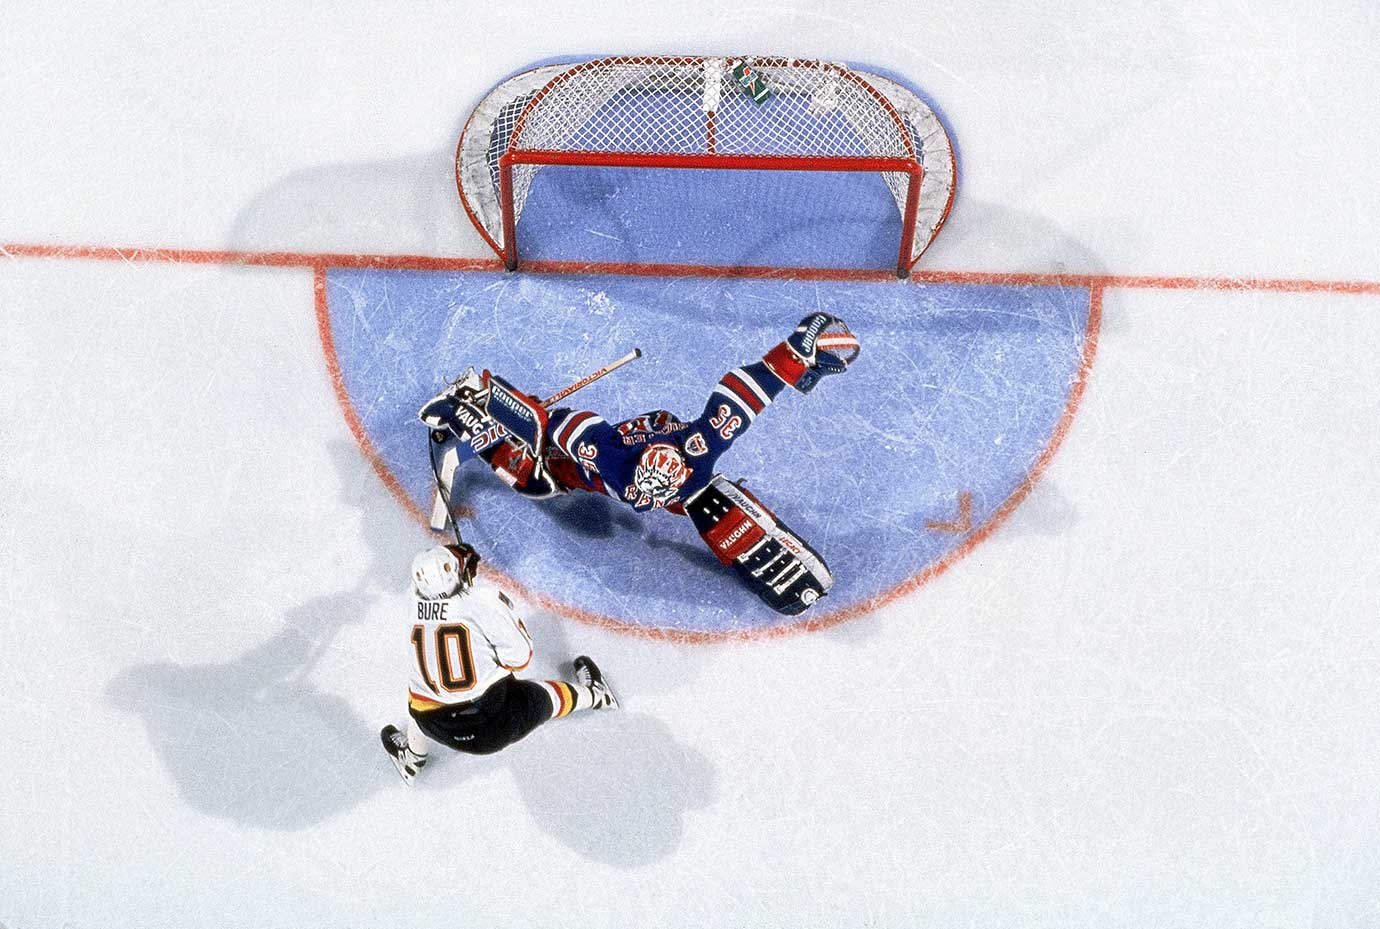 Pavel Bure of Vancouver in action vs New York Rangers goalie Mike Richter in the 1994 Stanley Cup Finals.